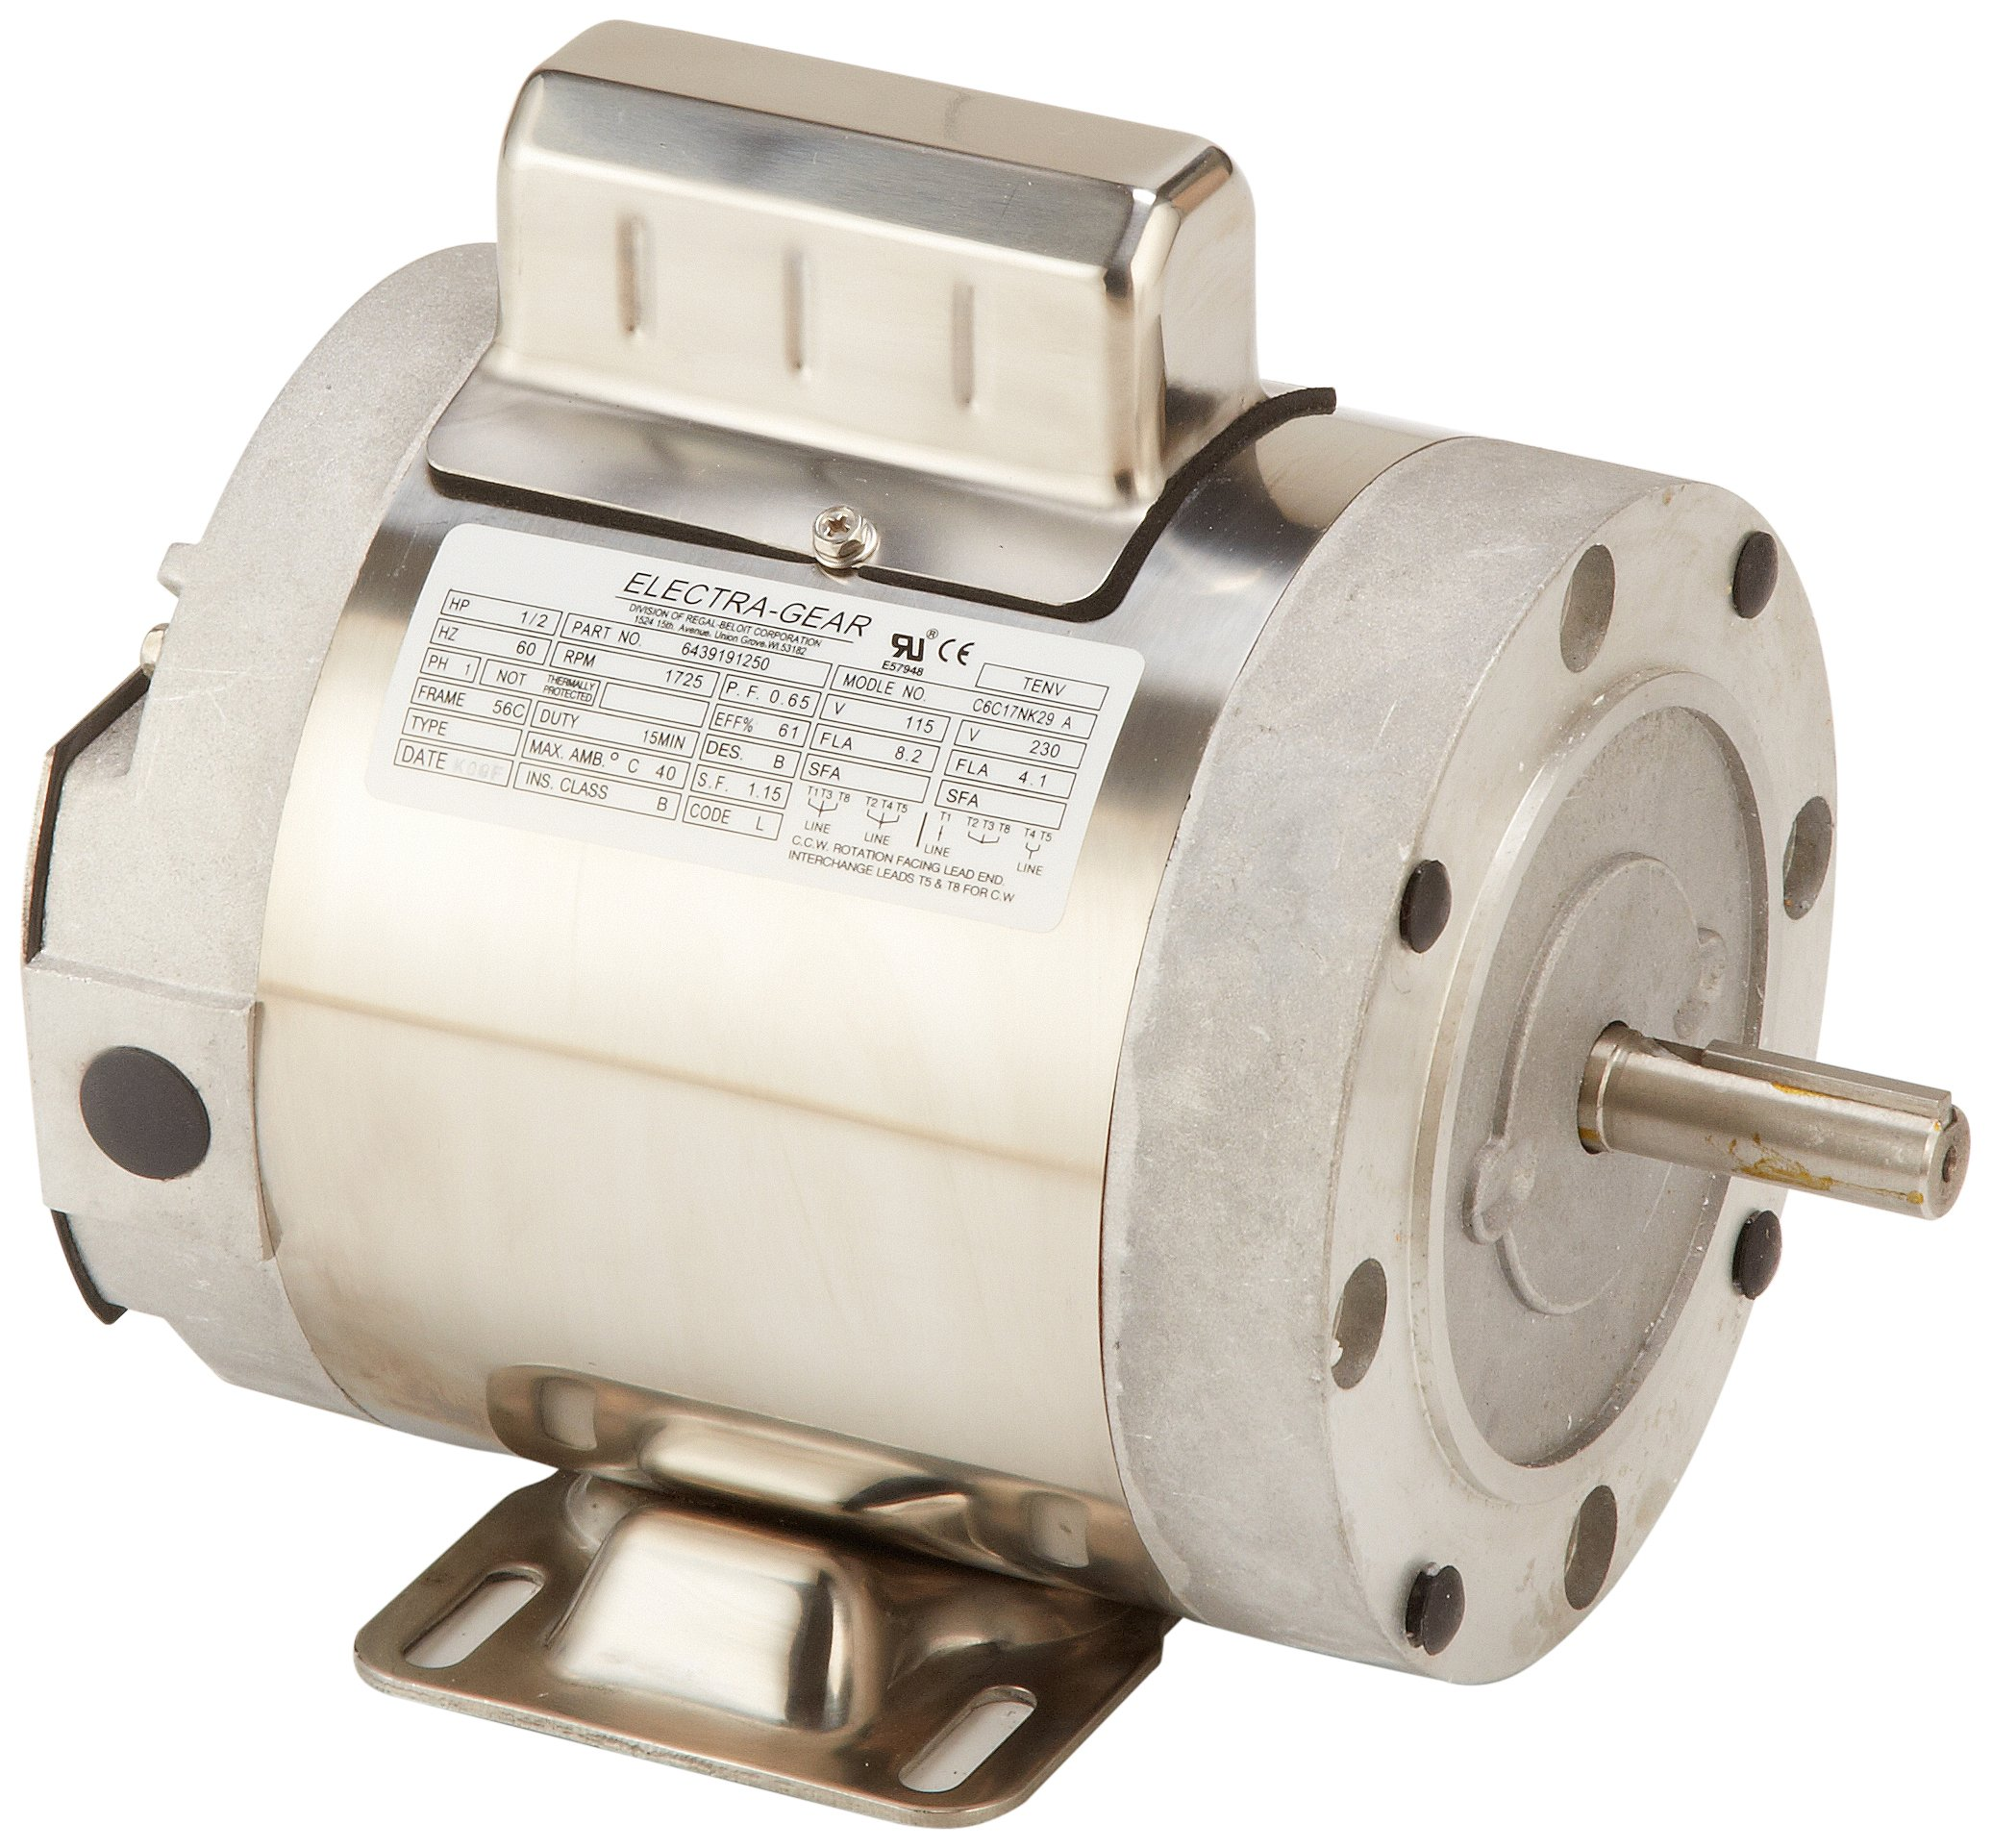 Leeson 6439191250 Boat Hoist Motor, 1 Phase, 56C Frame, Rigid C Mounting, 1/2HP, 1800 RPM, 115/208-230V Voltage, 60Hz Fequency